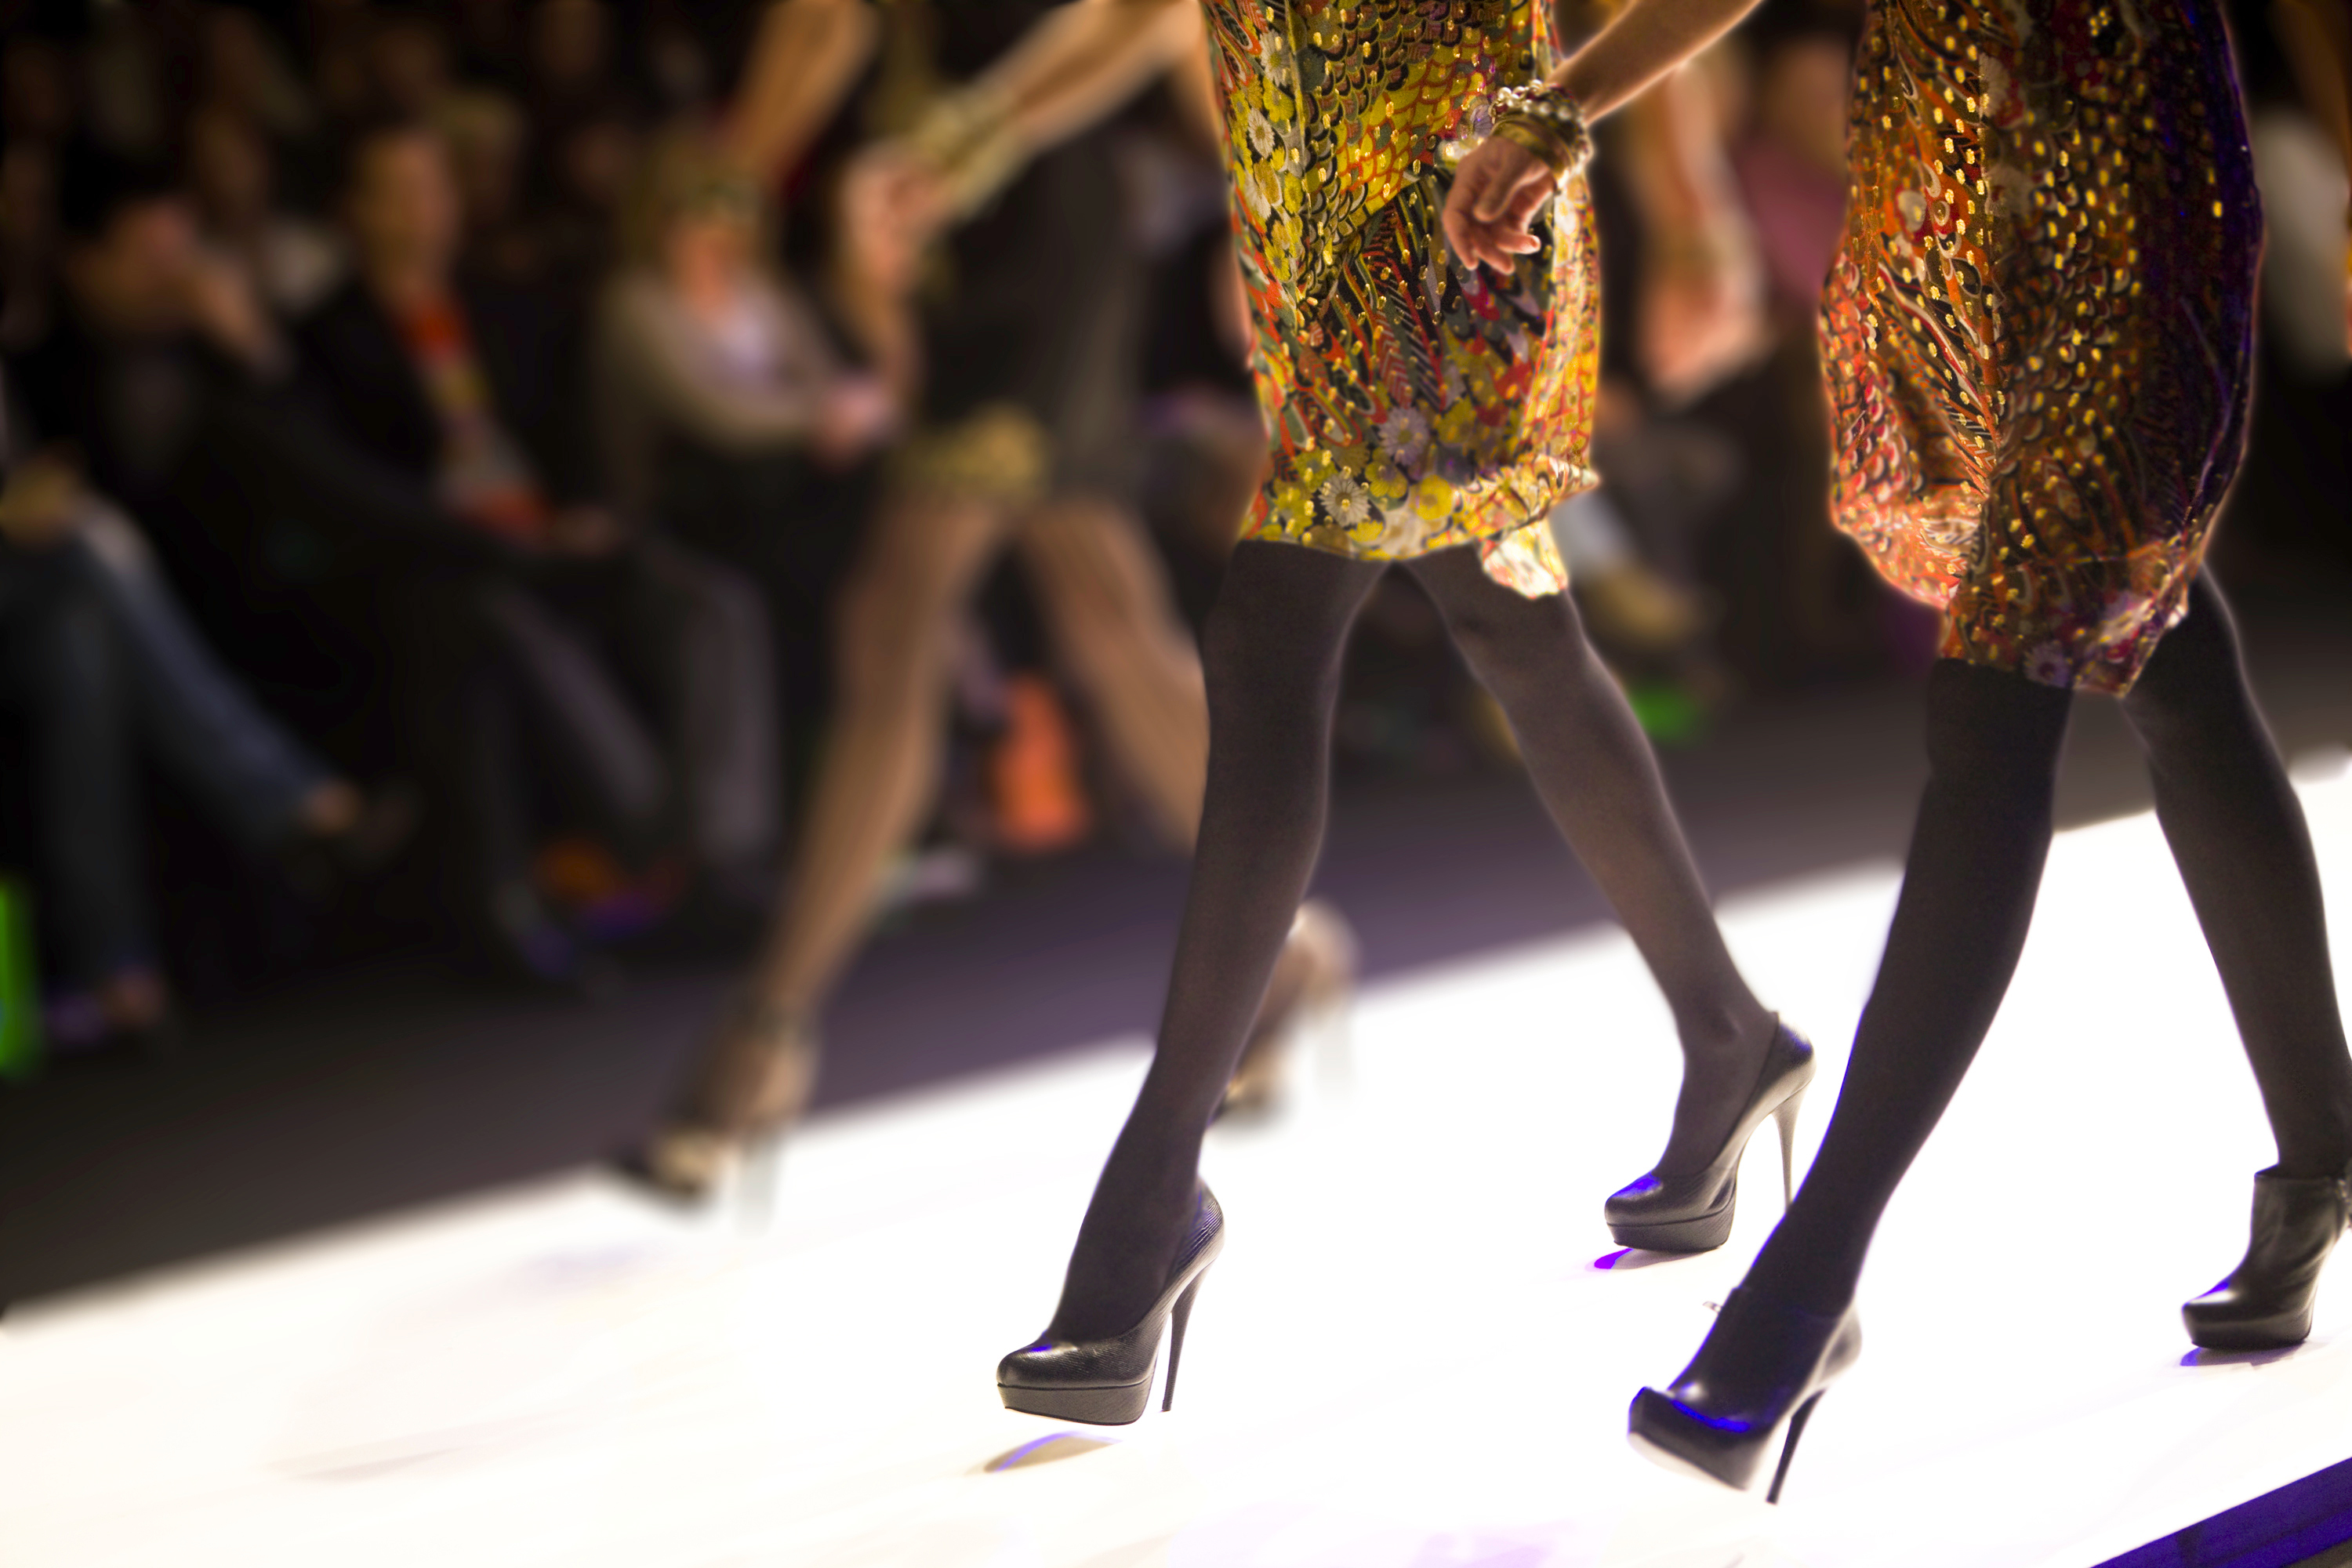 Fashion Show Catwalk Shoes Legs Global Trade Review Gtr